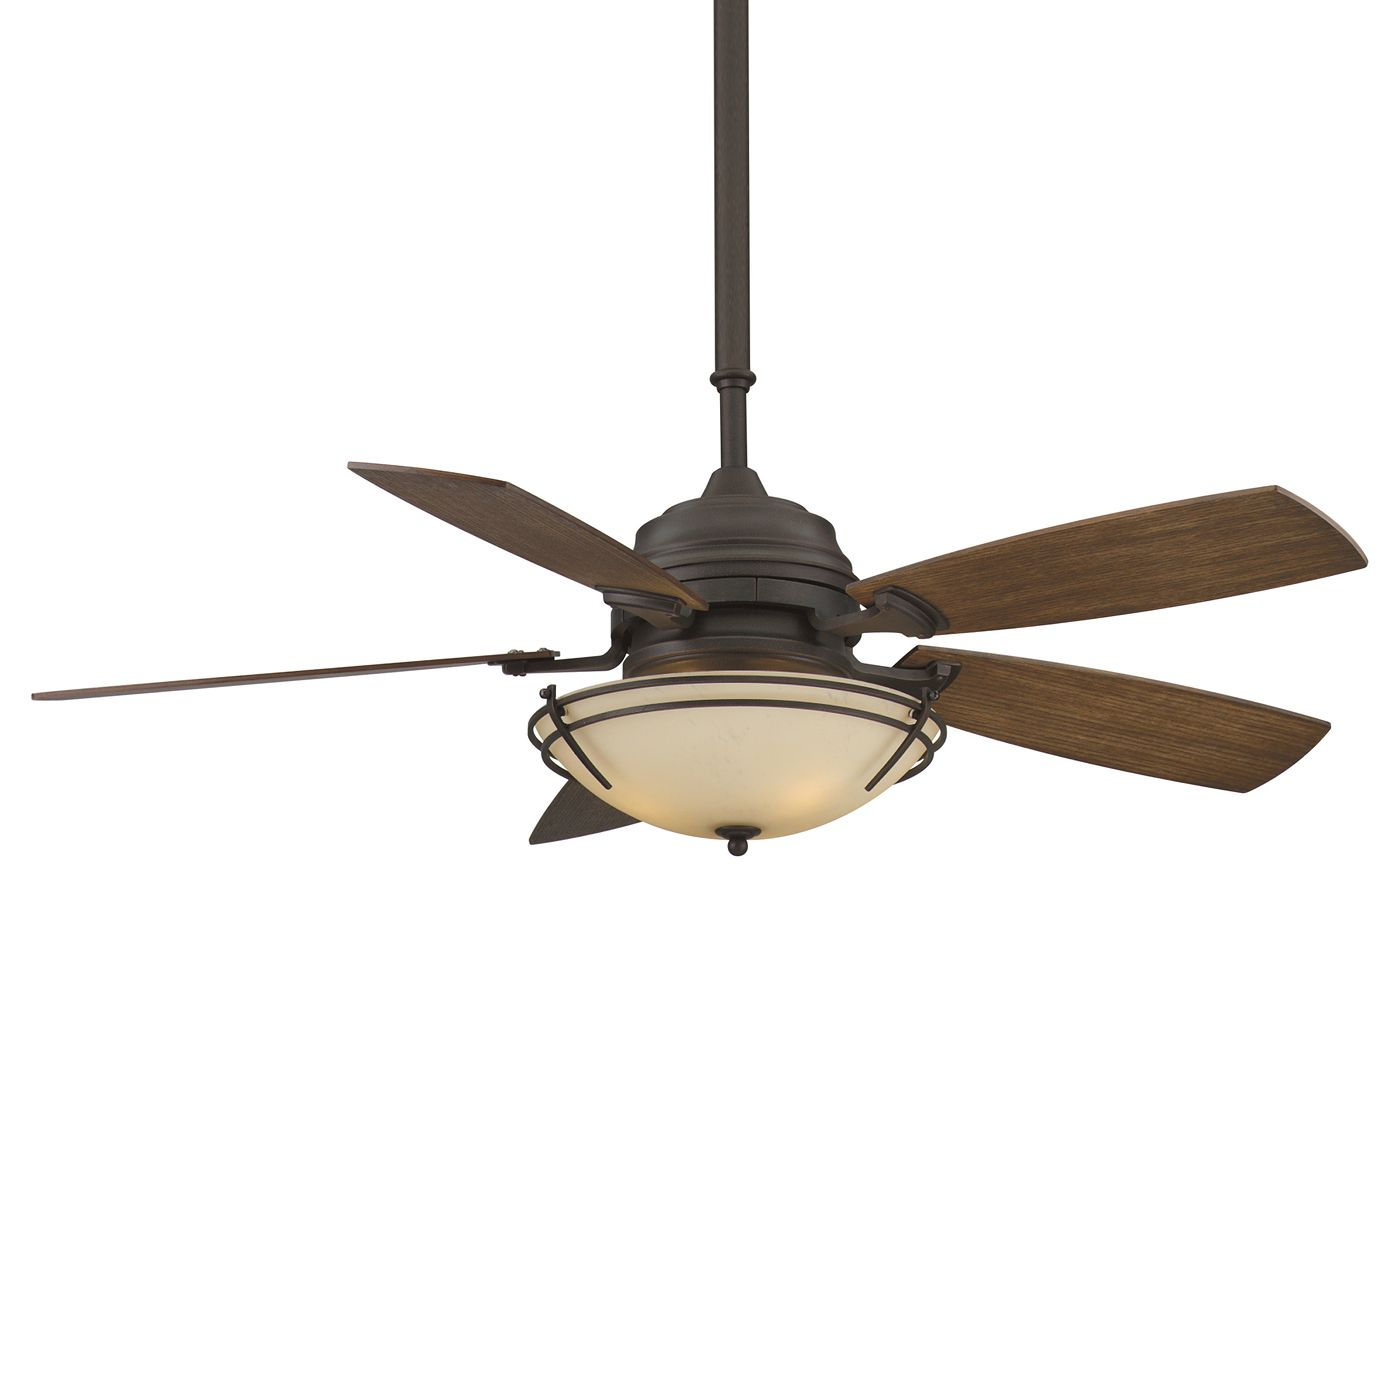 Fanimation HF6600 3 Light 54 in Hubbardton Forge Standard Presidio